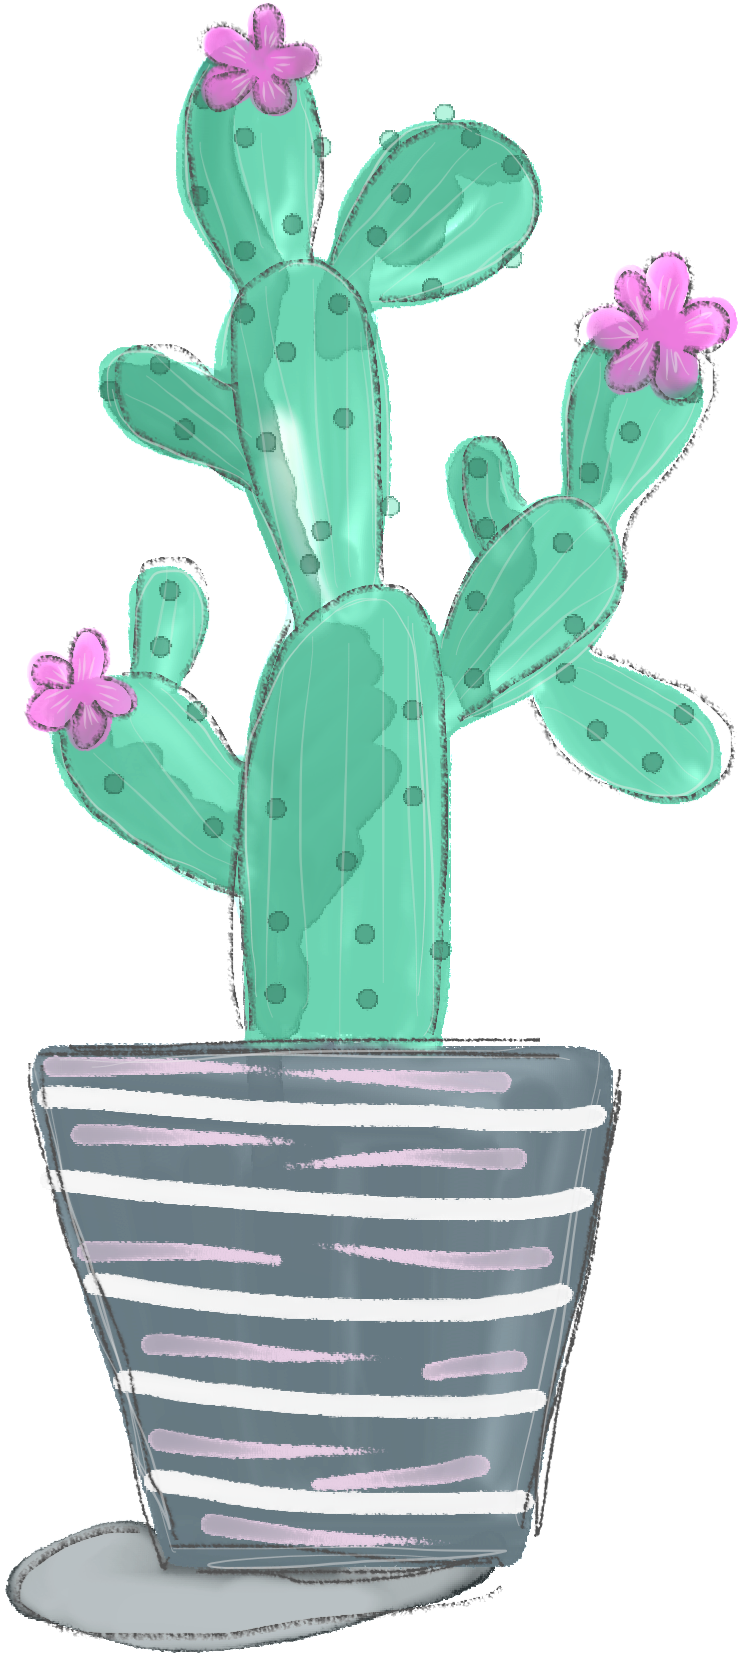 #FreeToEdit #ftestickers #cactus #plant